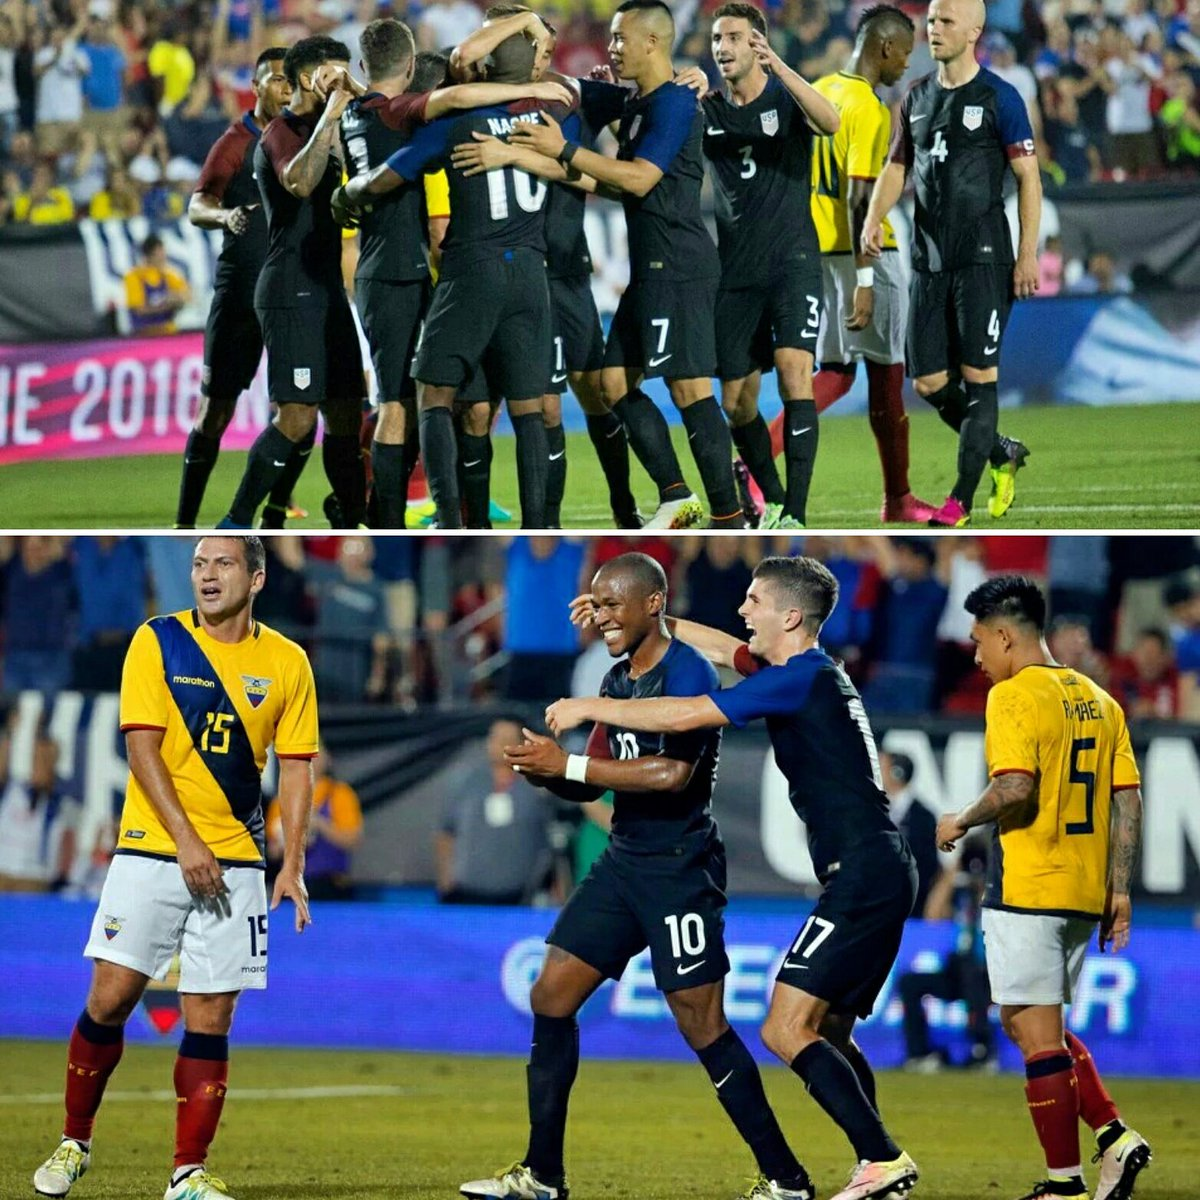 Great win last night! Thrilled to get my first goal for the national team as well! https://t.co/9xQm6OtZRJ